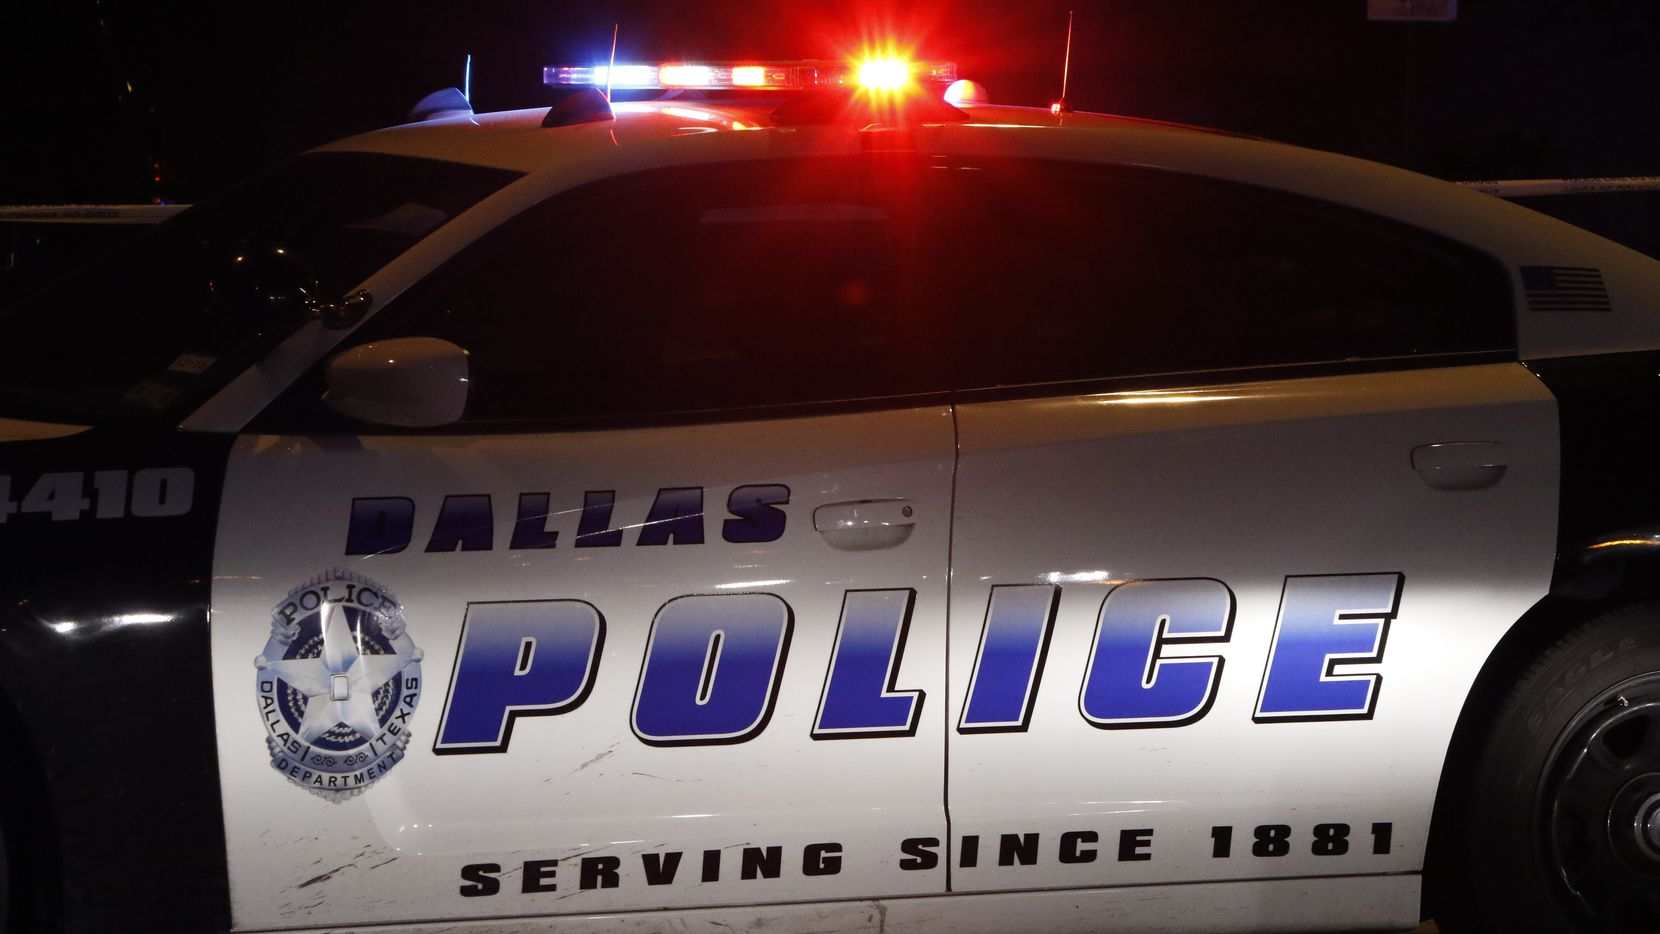 Around 1:30 a.m. Tuesday, Dallas police responded to a call in the 7300 block of Pineberry Road, near Mountain Creek Parkway. When they arrived, police found a man with several gunshot wounds.